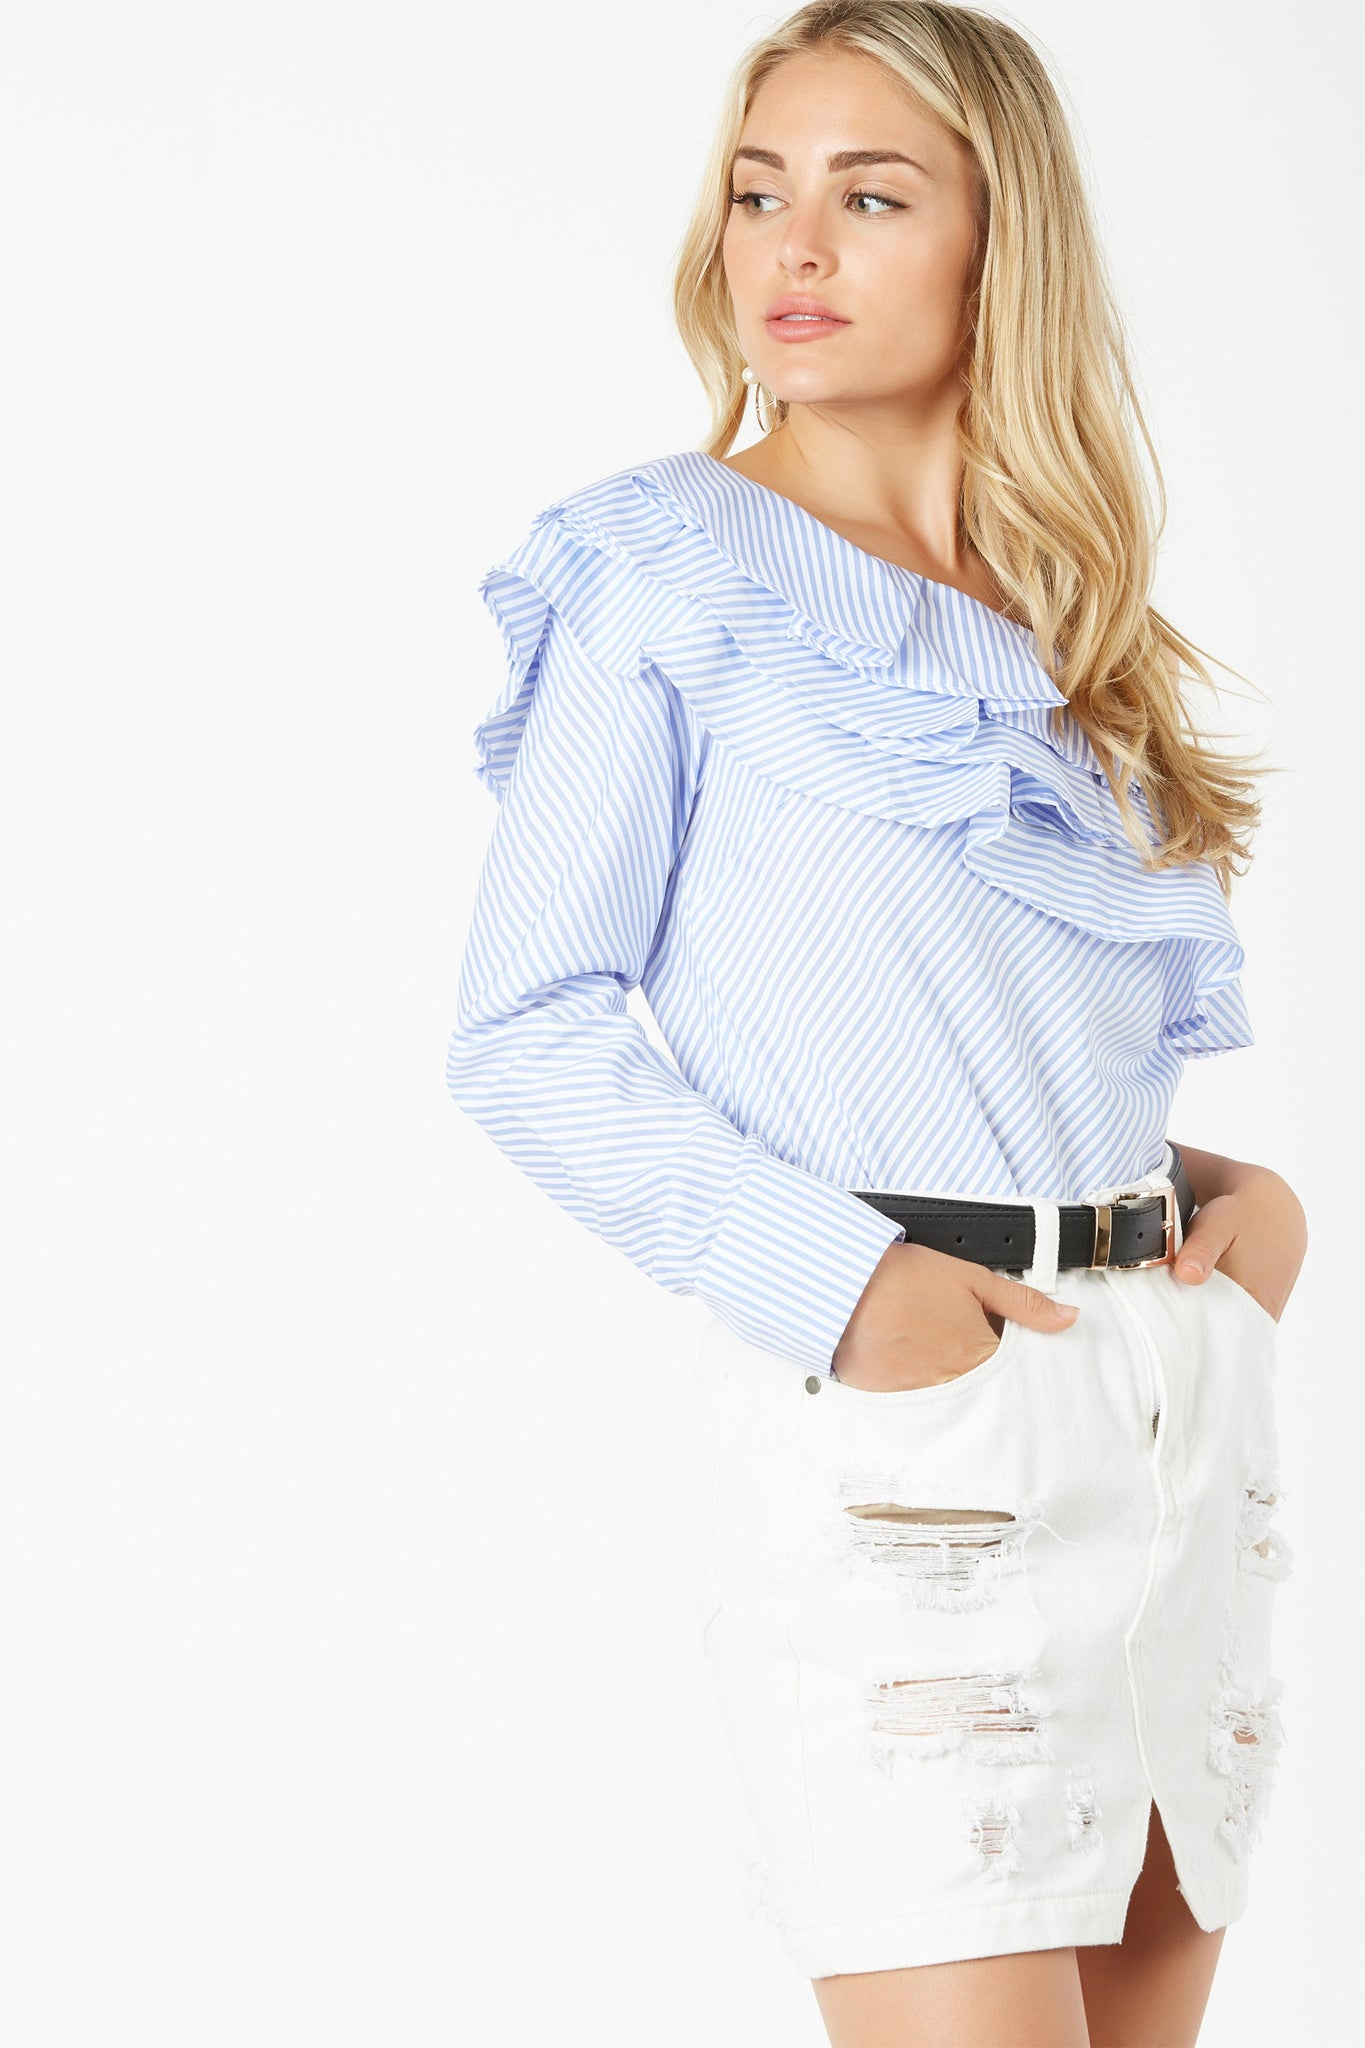 Chic one shoulder top with stripe pattern throughout. Ruffle tier detailing with relaxed fit.